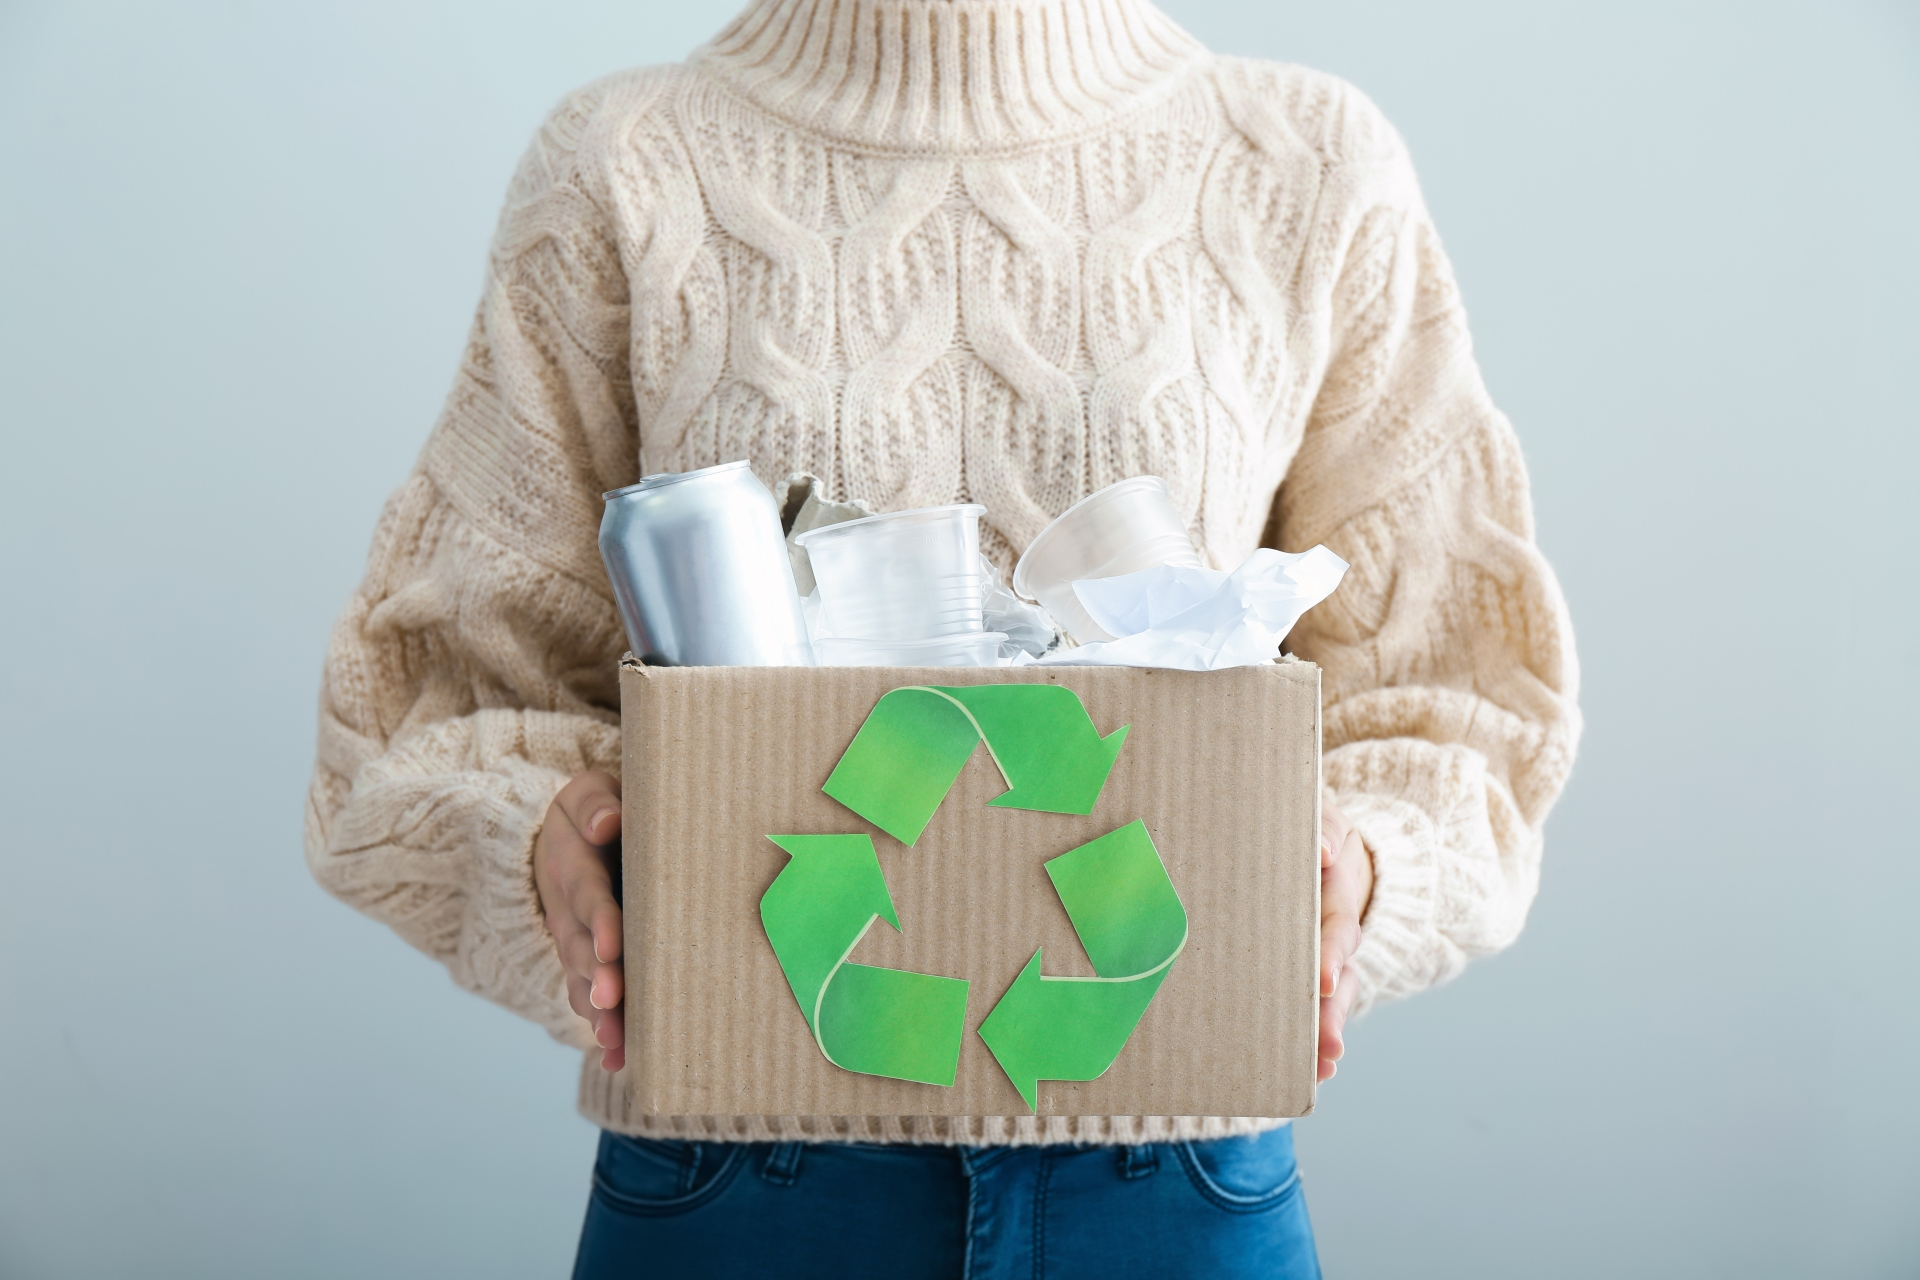 Picture of woman holding recyclables